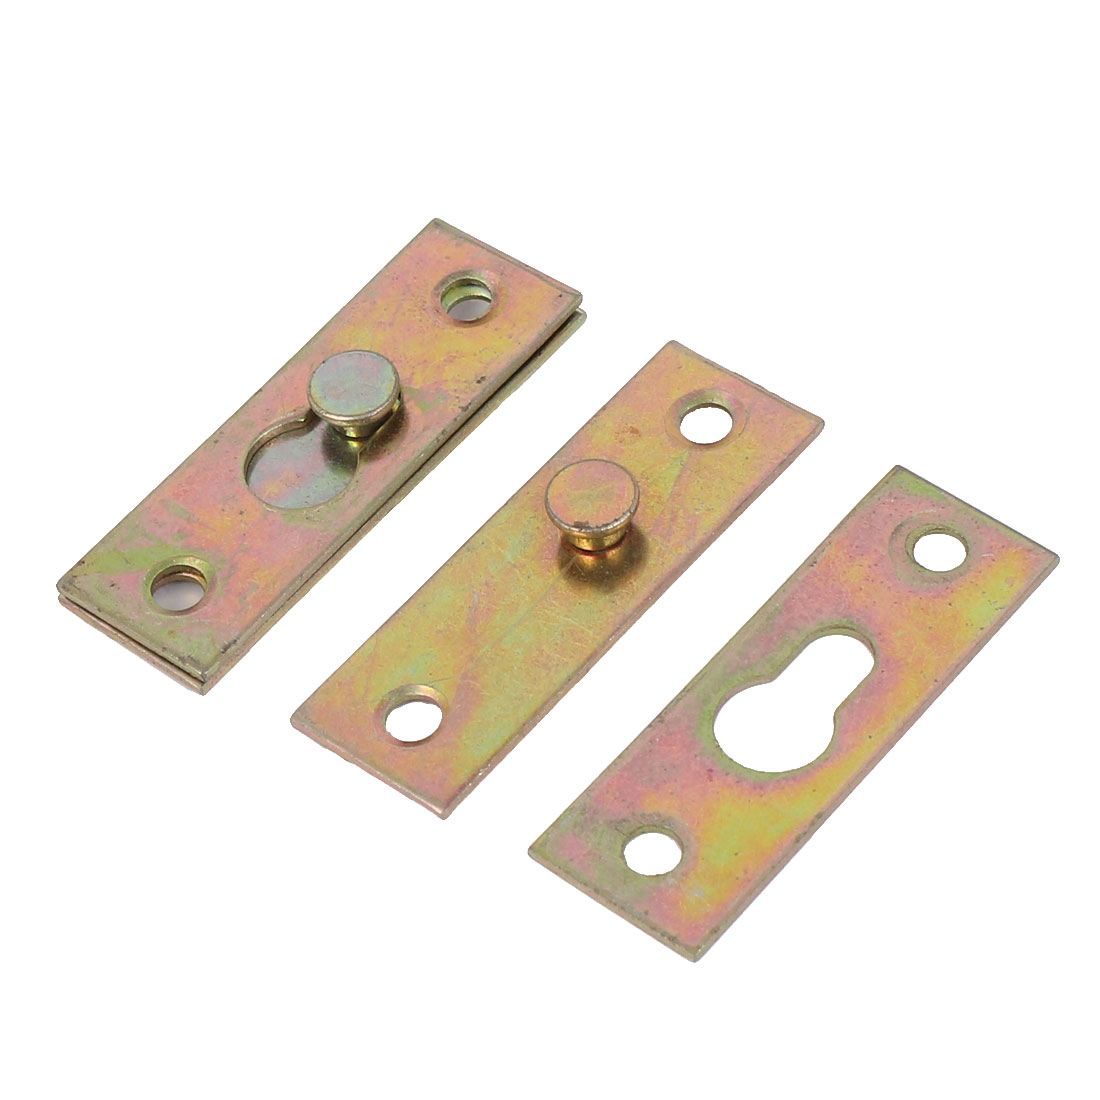 Furniture Bed Rail Hook Plate Bracket Connector Brass Tone 2pcs